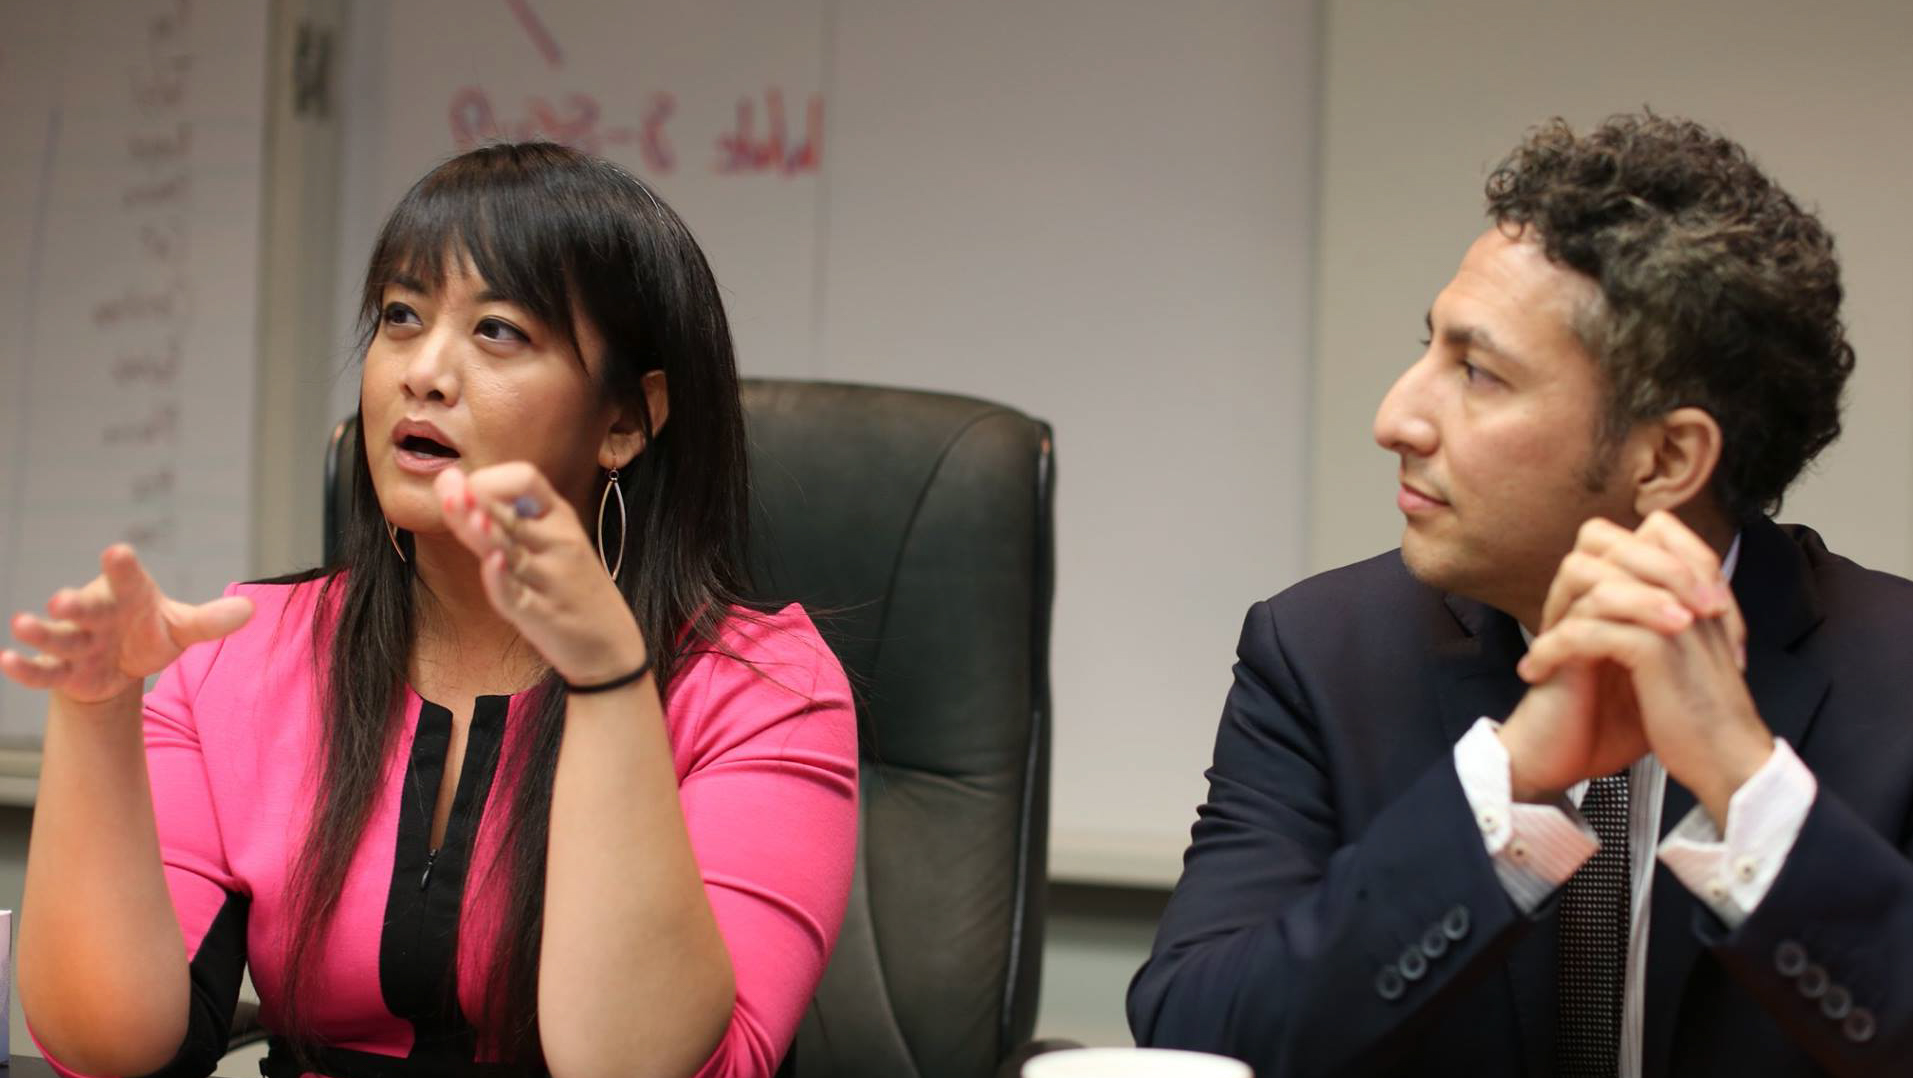 Members of the NLC Los Angeles cohort lead a discussion.